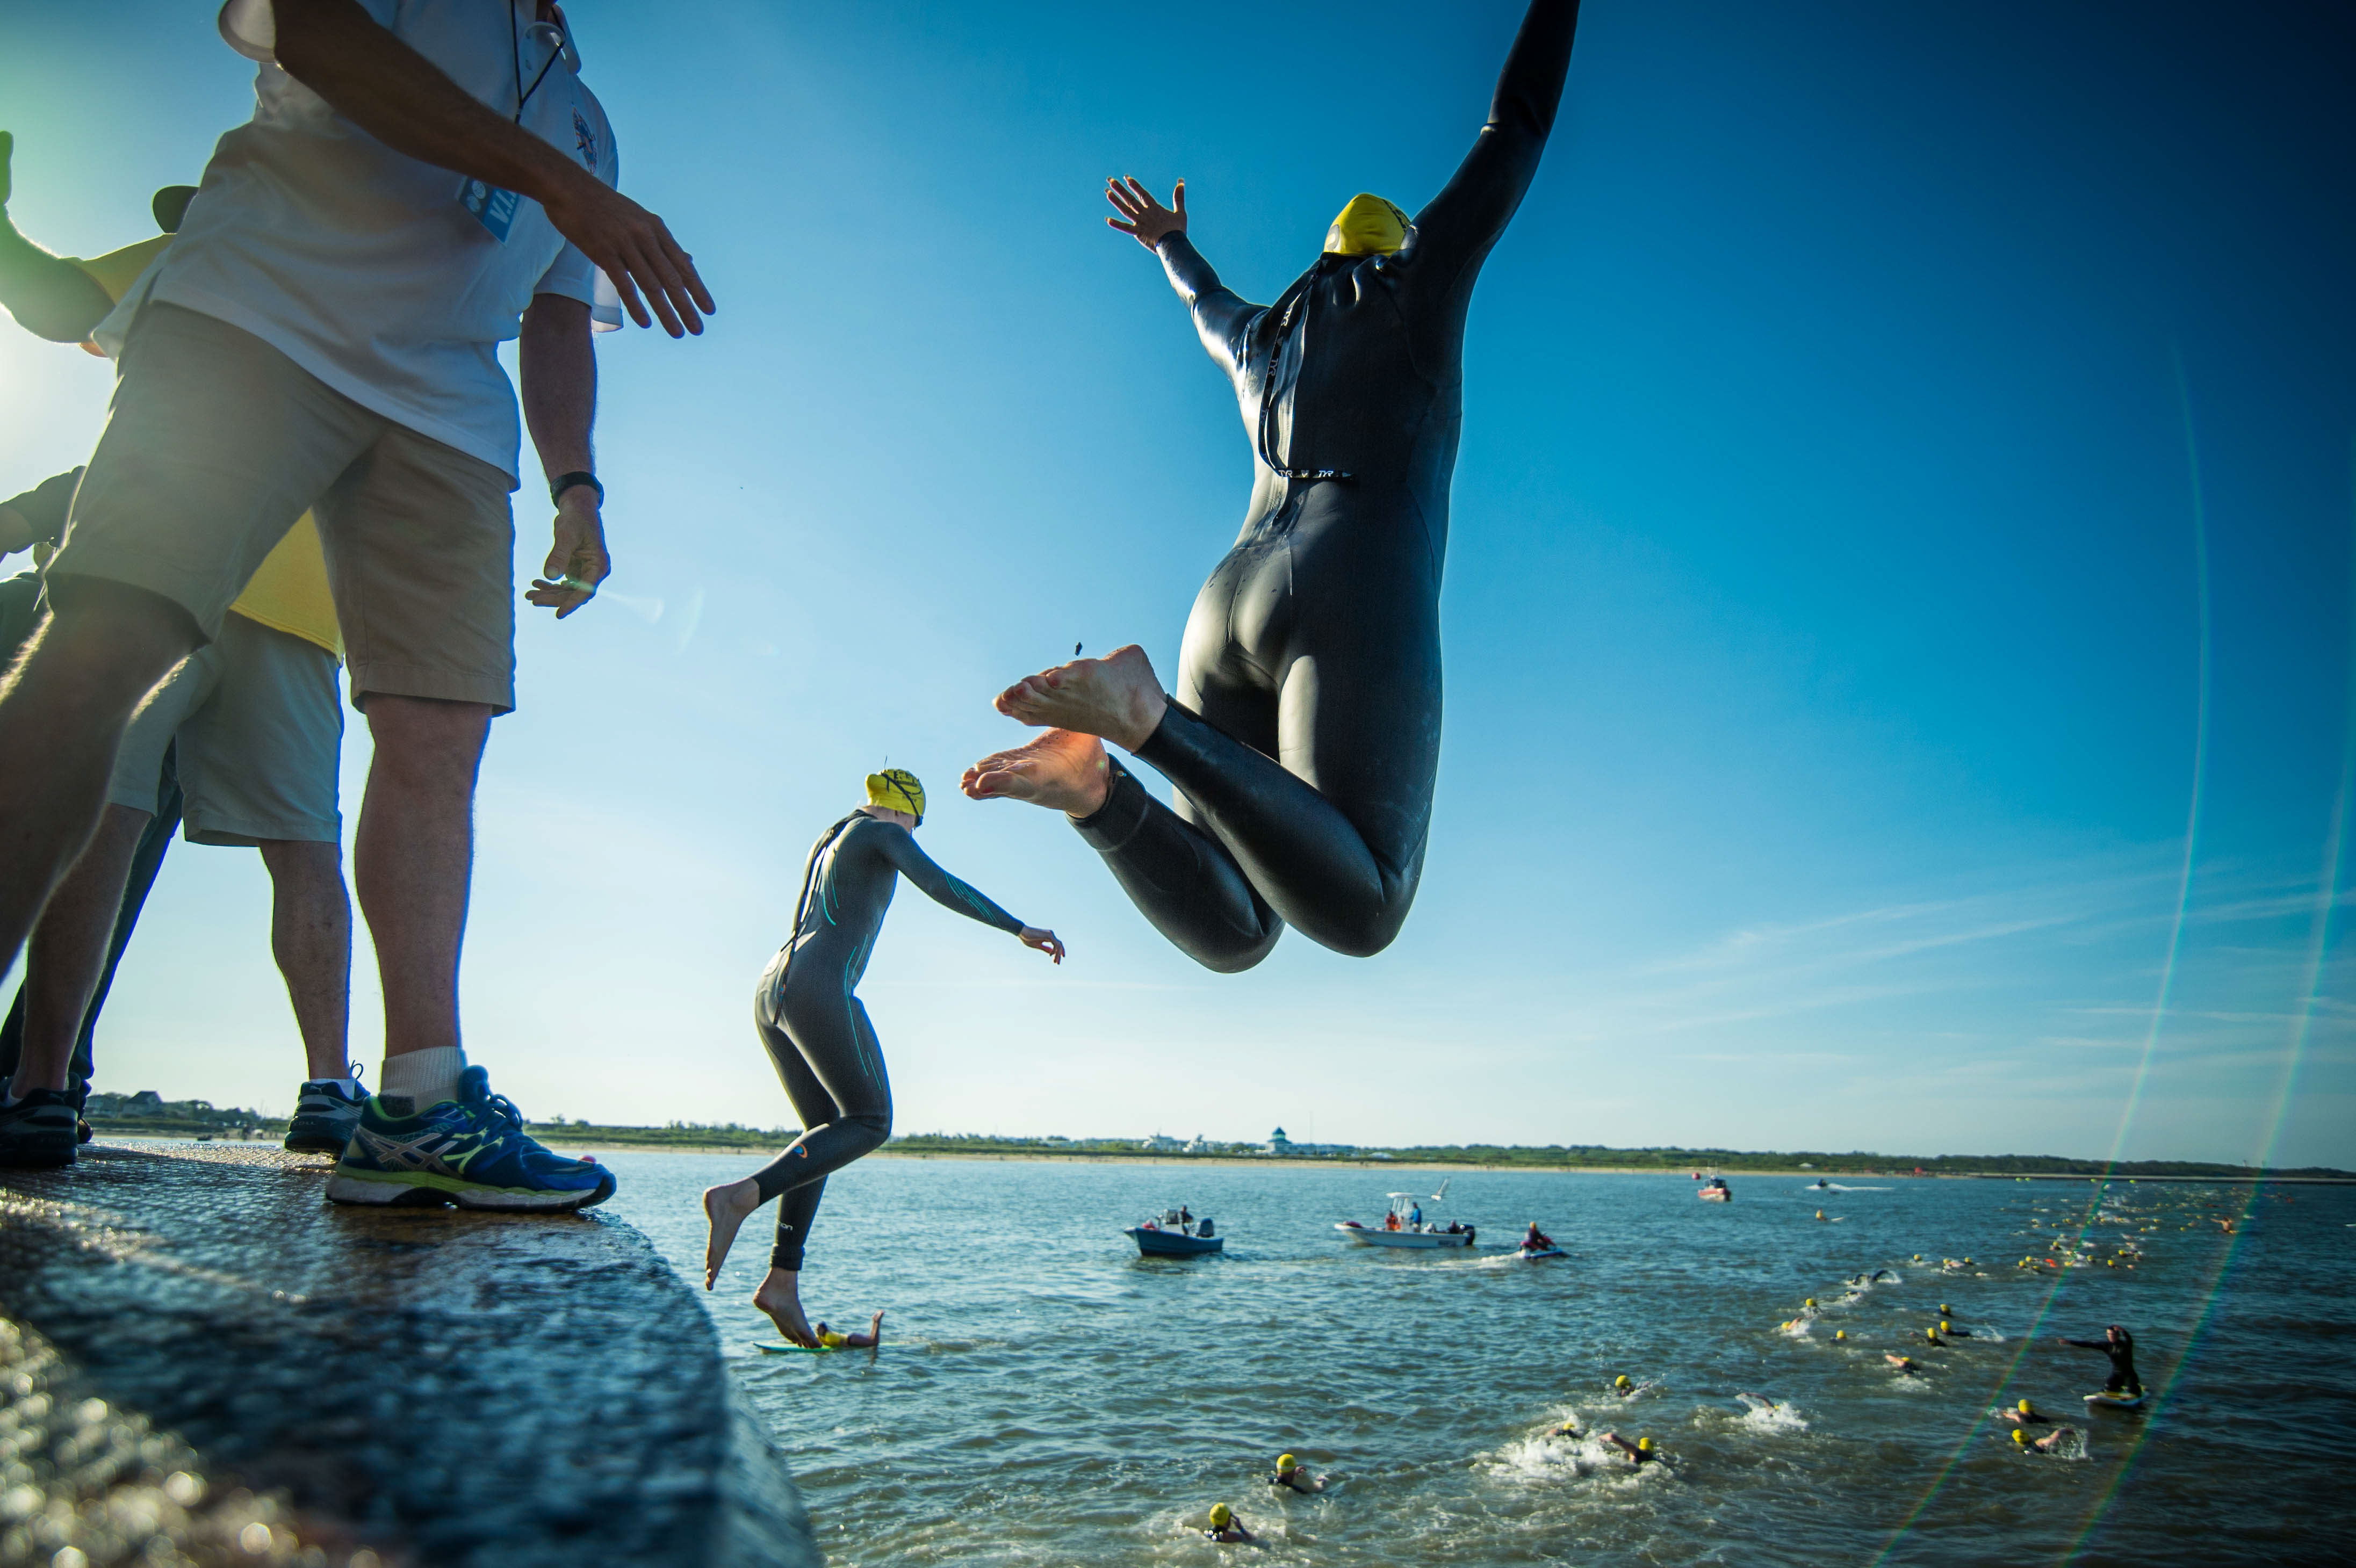 jump happiness  - Escape From Lewes Open Water Classic